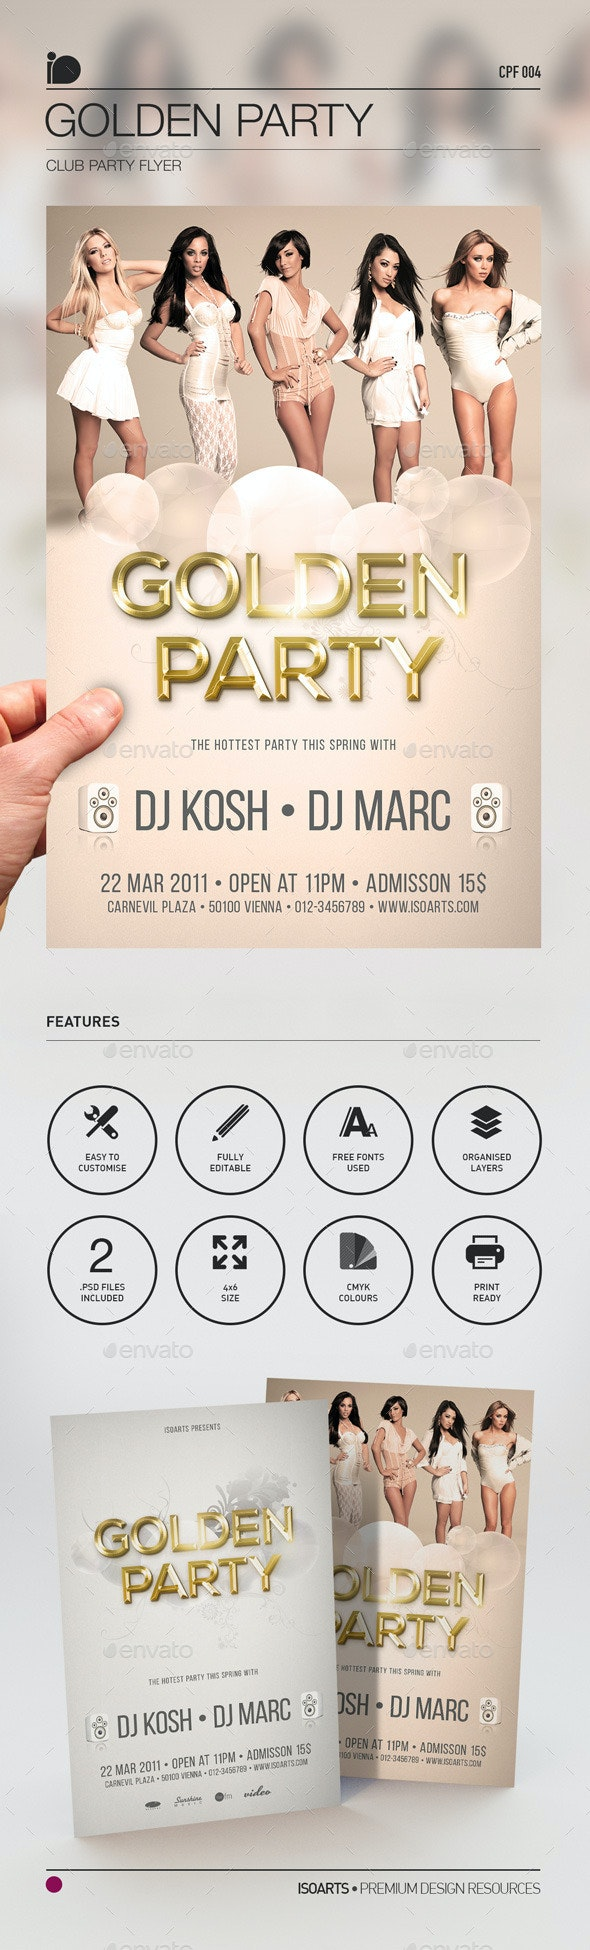 Club Party Flyer - Golden Party - Clubs & Parties Events